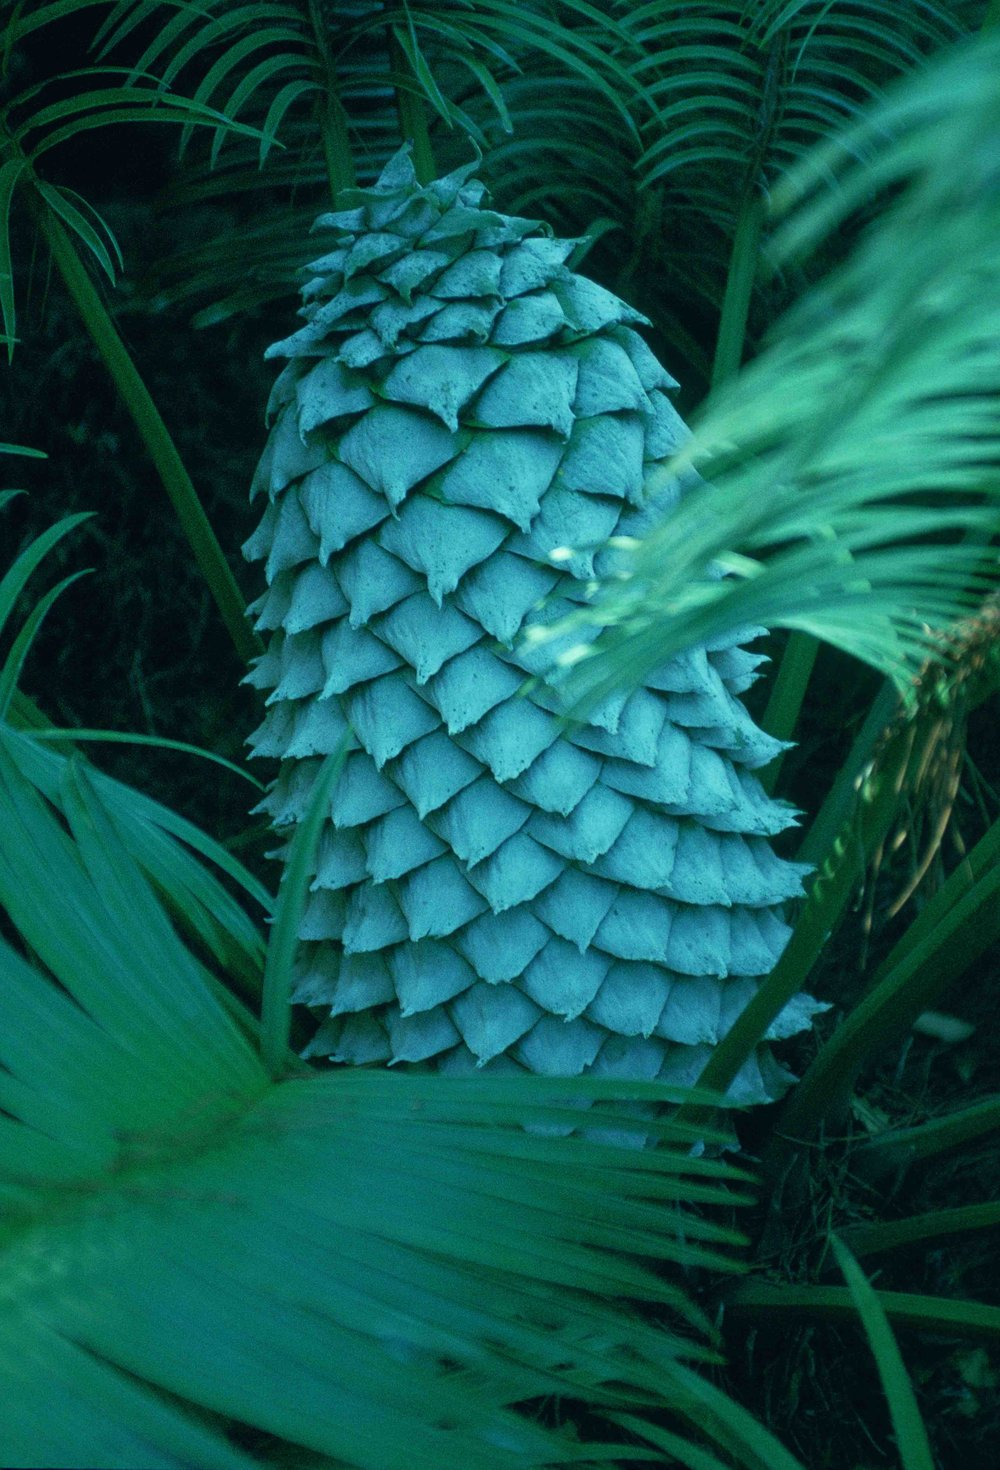 Dioon spinulosum.jpg